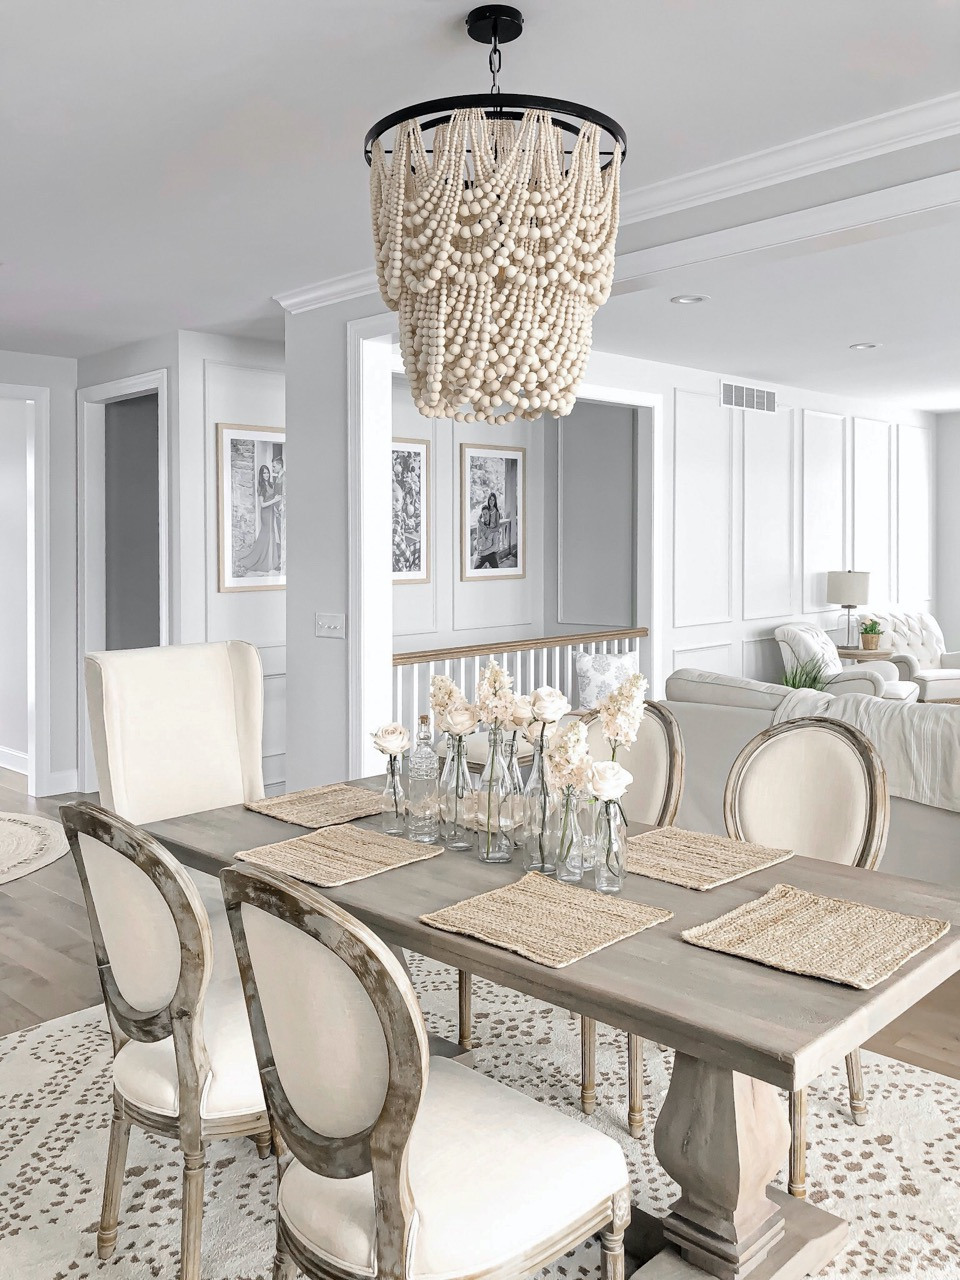 Dining room/ living room decor